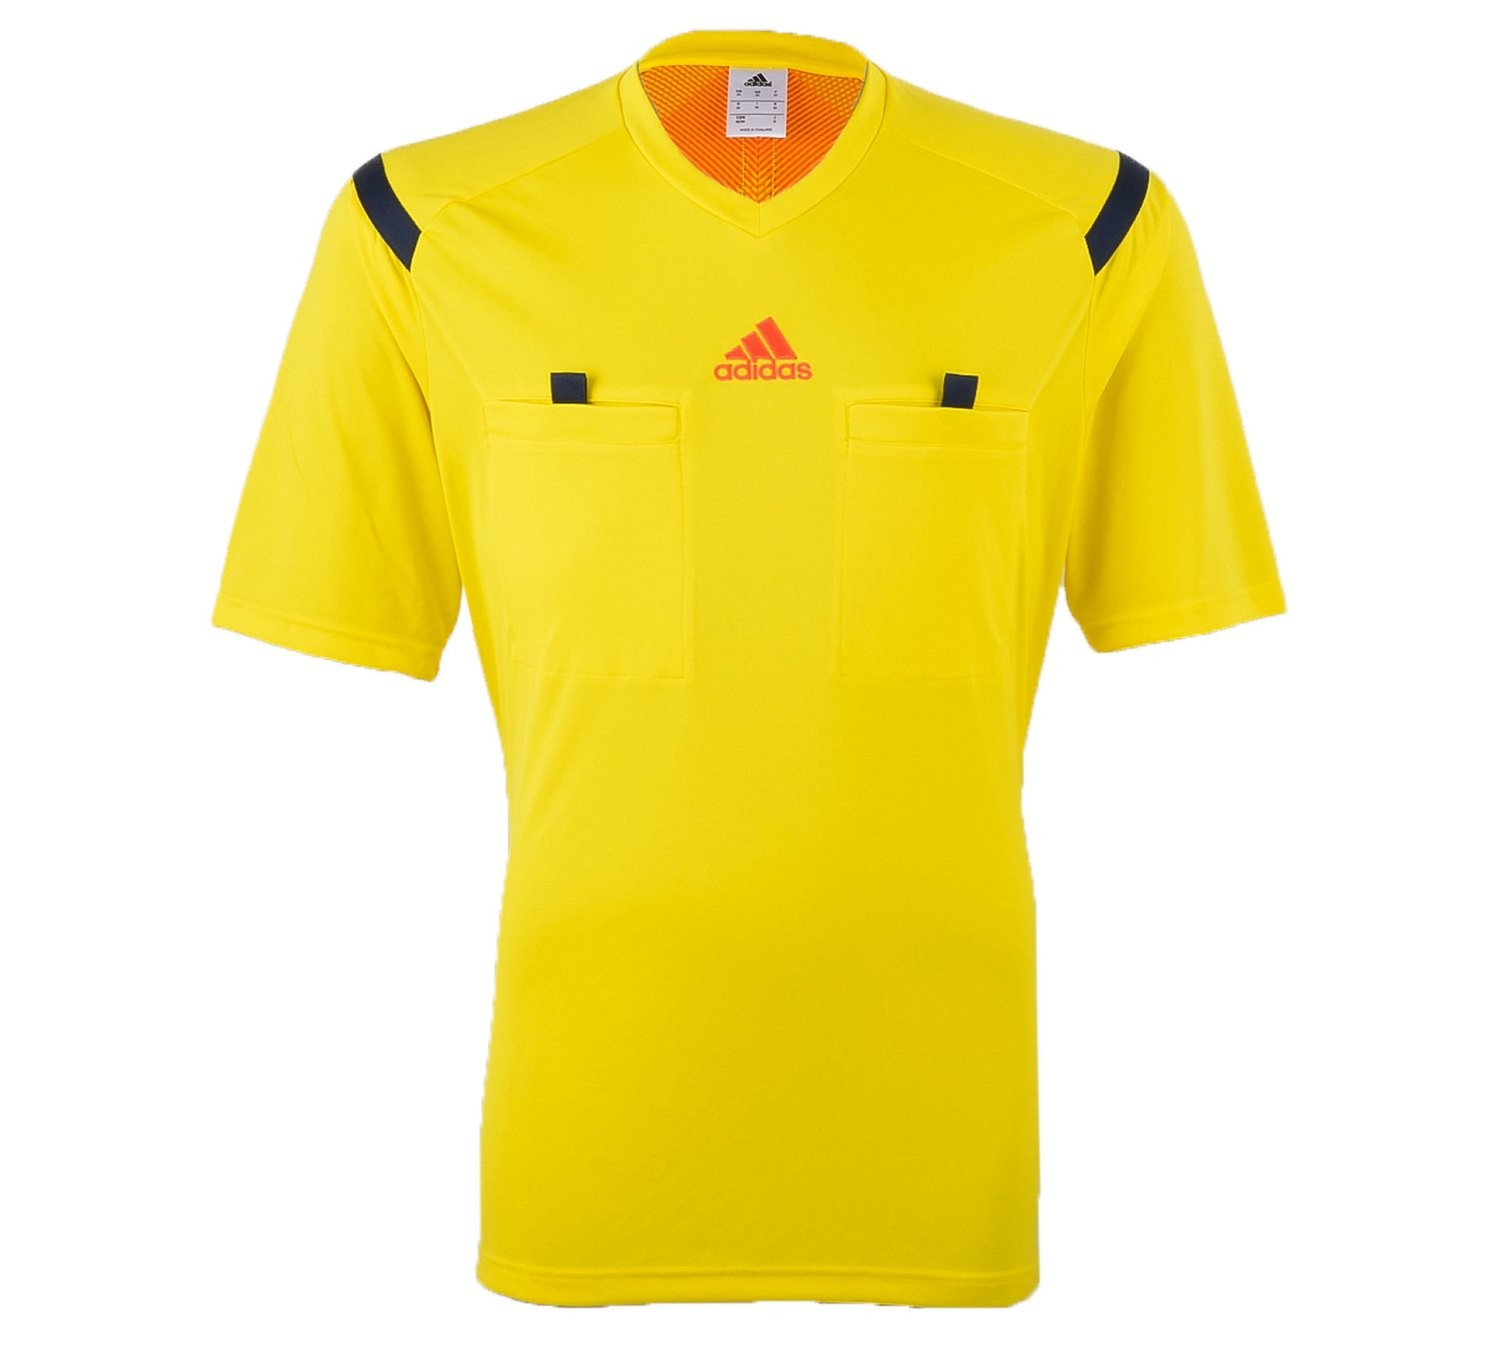 adidas 2014 Vivid Yellow Shirt